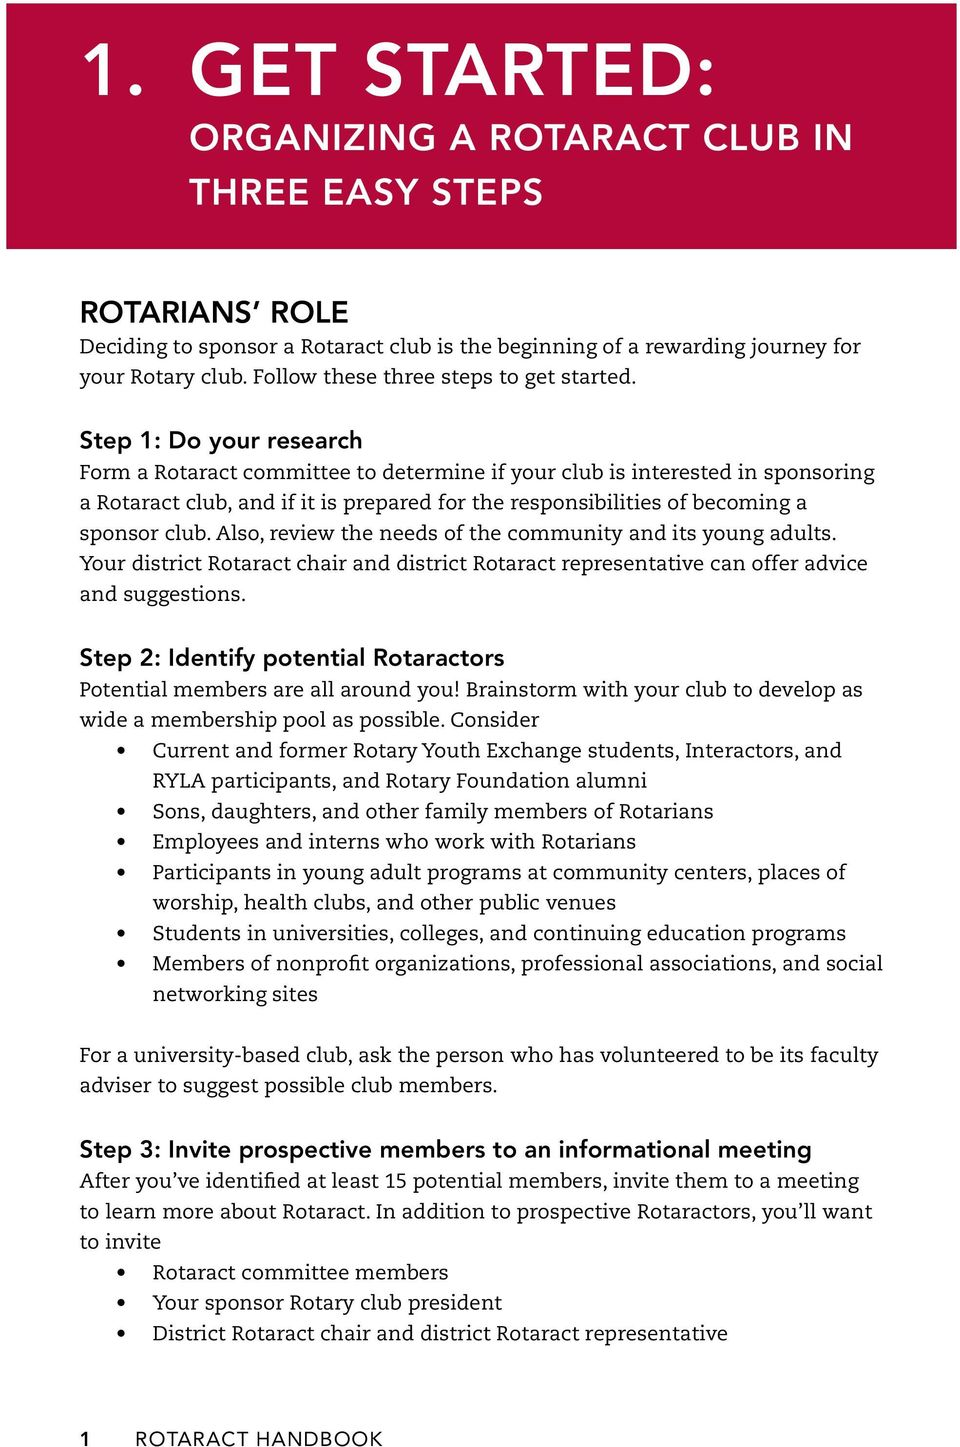 Step 1: Do your research Form a Rotaract committee to determine if your club is interested in sponsoring a Rotaract club, and if it is prepared for the responsibilities of becoming a sponsor club.